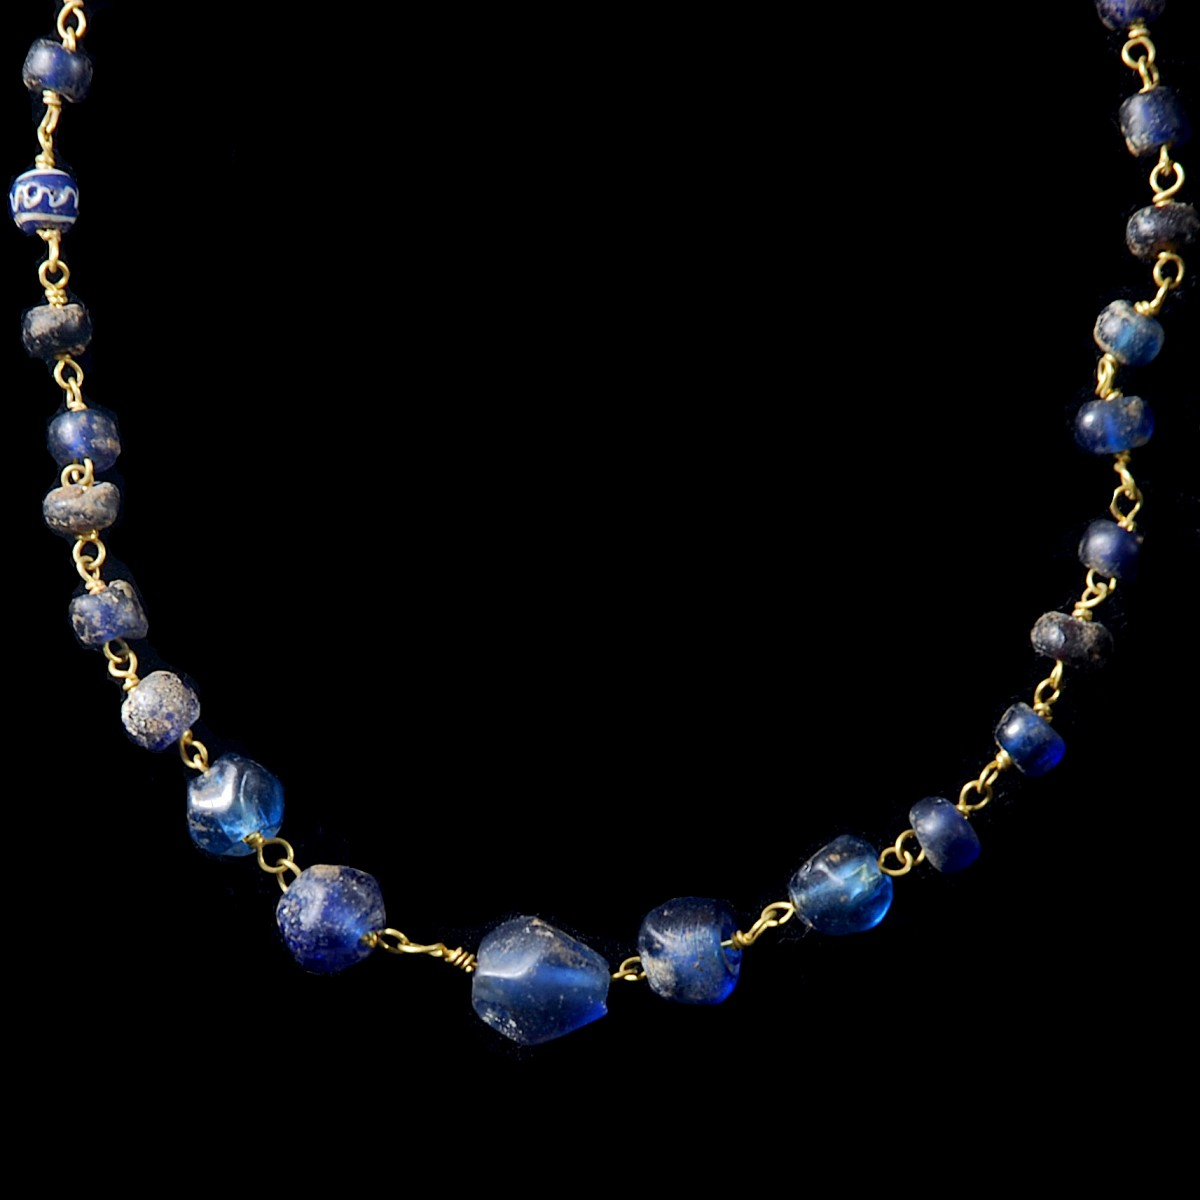 Roman gold necklace blue glass beads detail